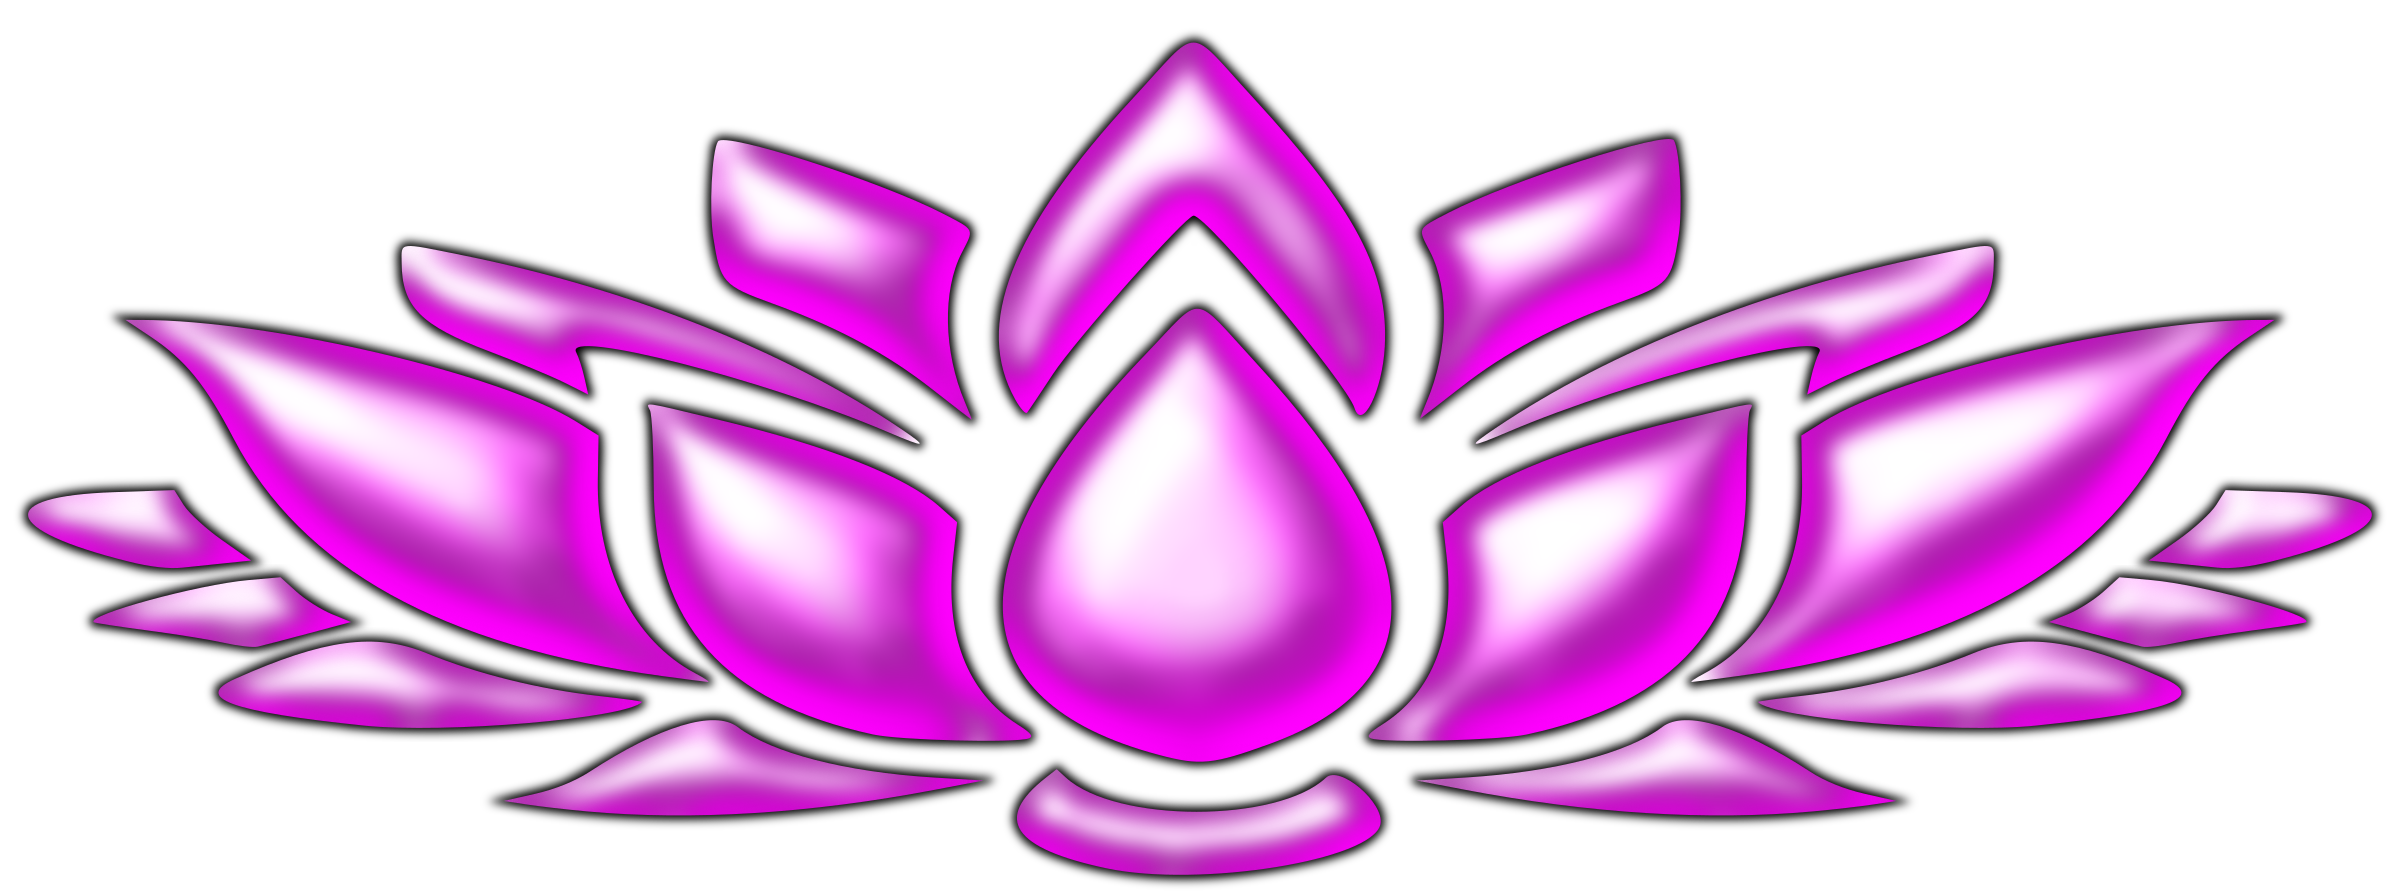 Purple lotus flower clipart vector black and white Lotus flower 4 Icons PNG - Free PNG and Icons Downloads vector black and white